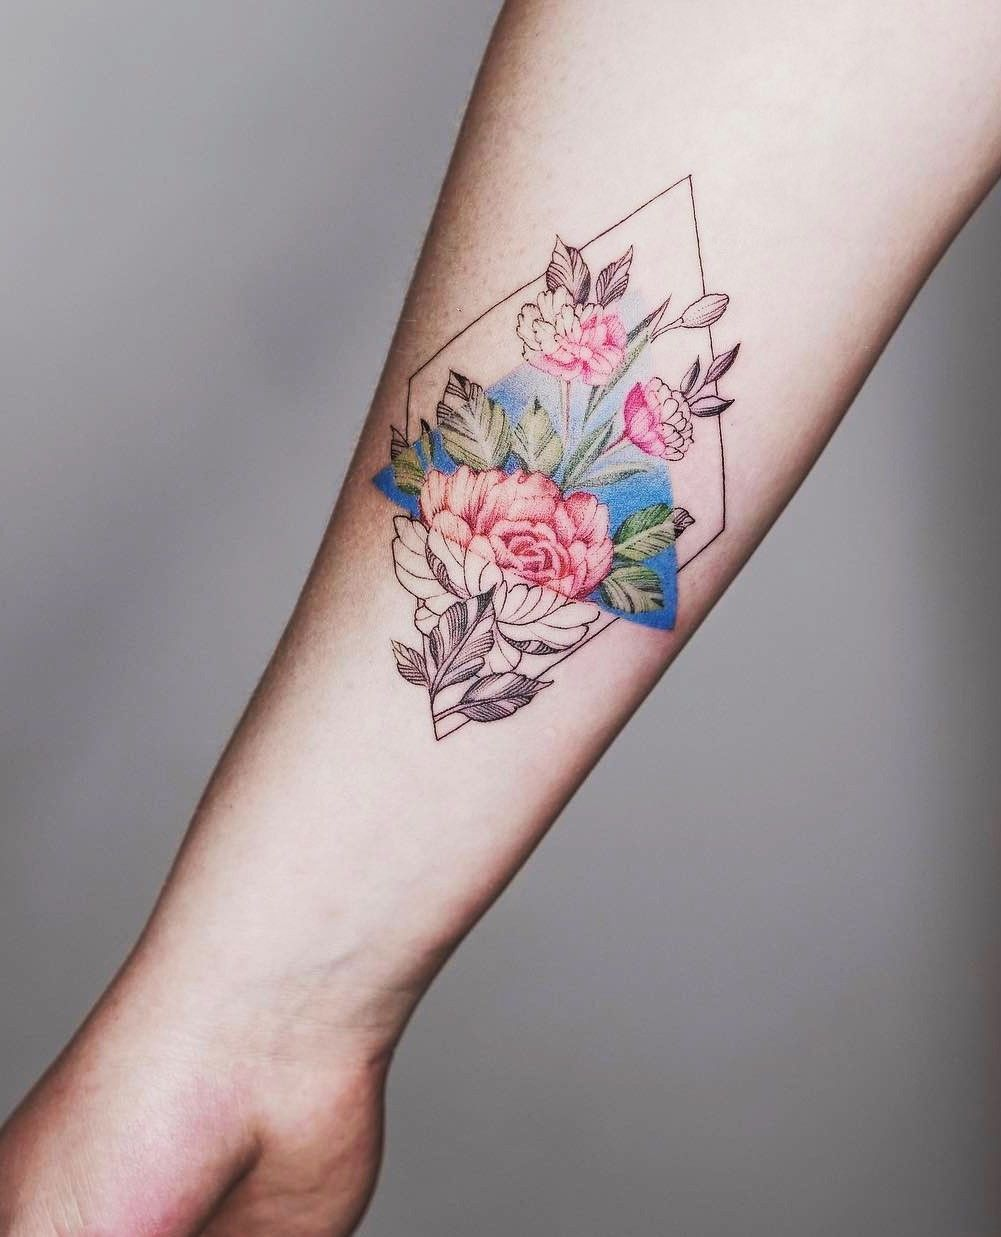 Looking for some tattoos ideas then check out these beautiful